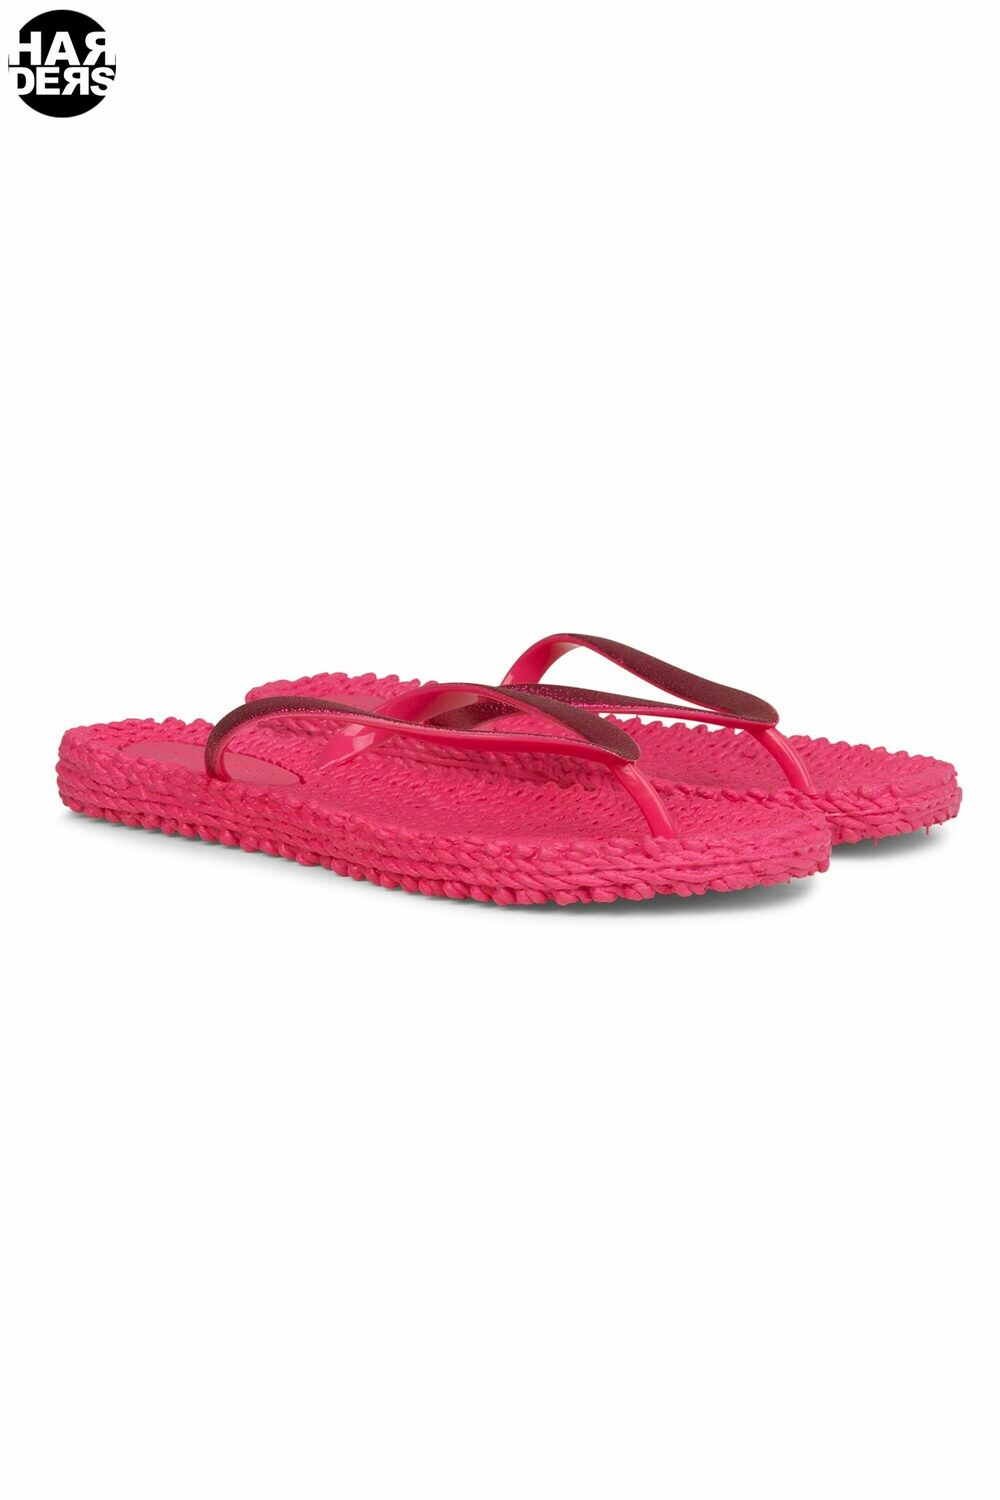 Ilse Jacobsen Flip Flop CHEERFUL